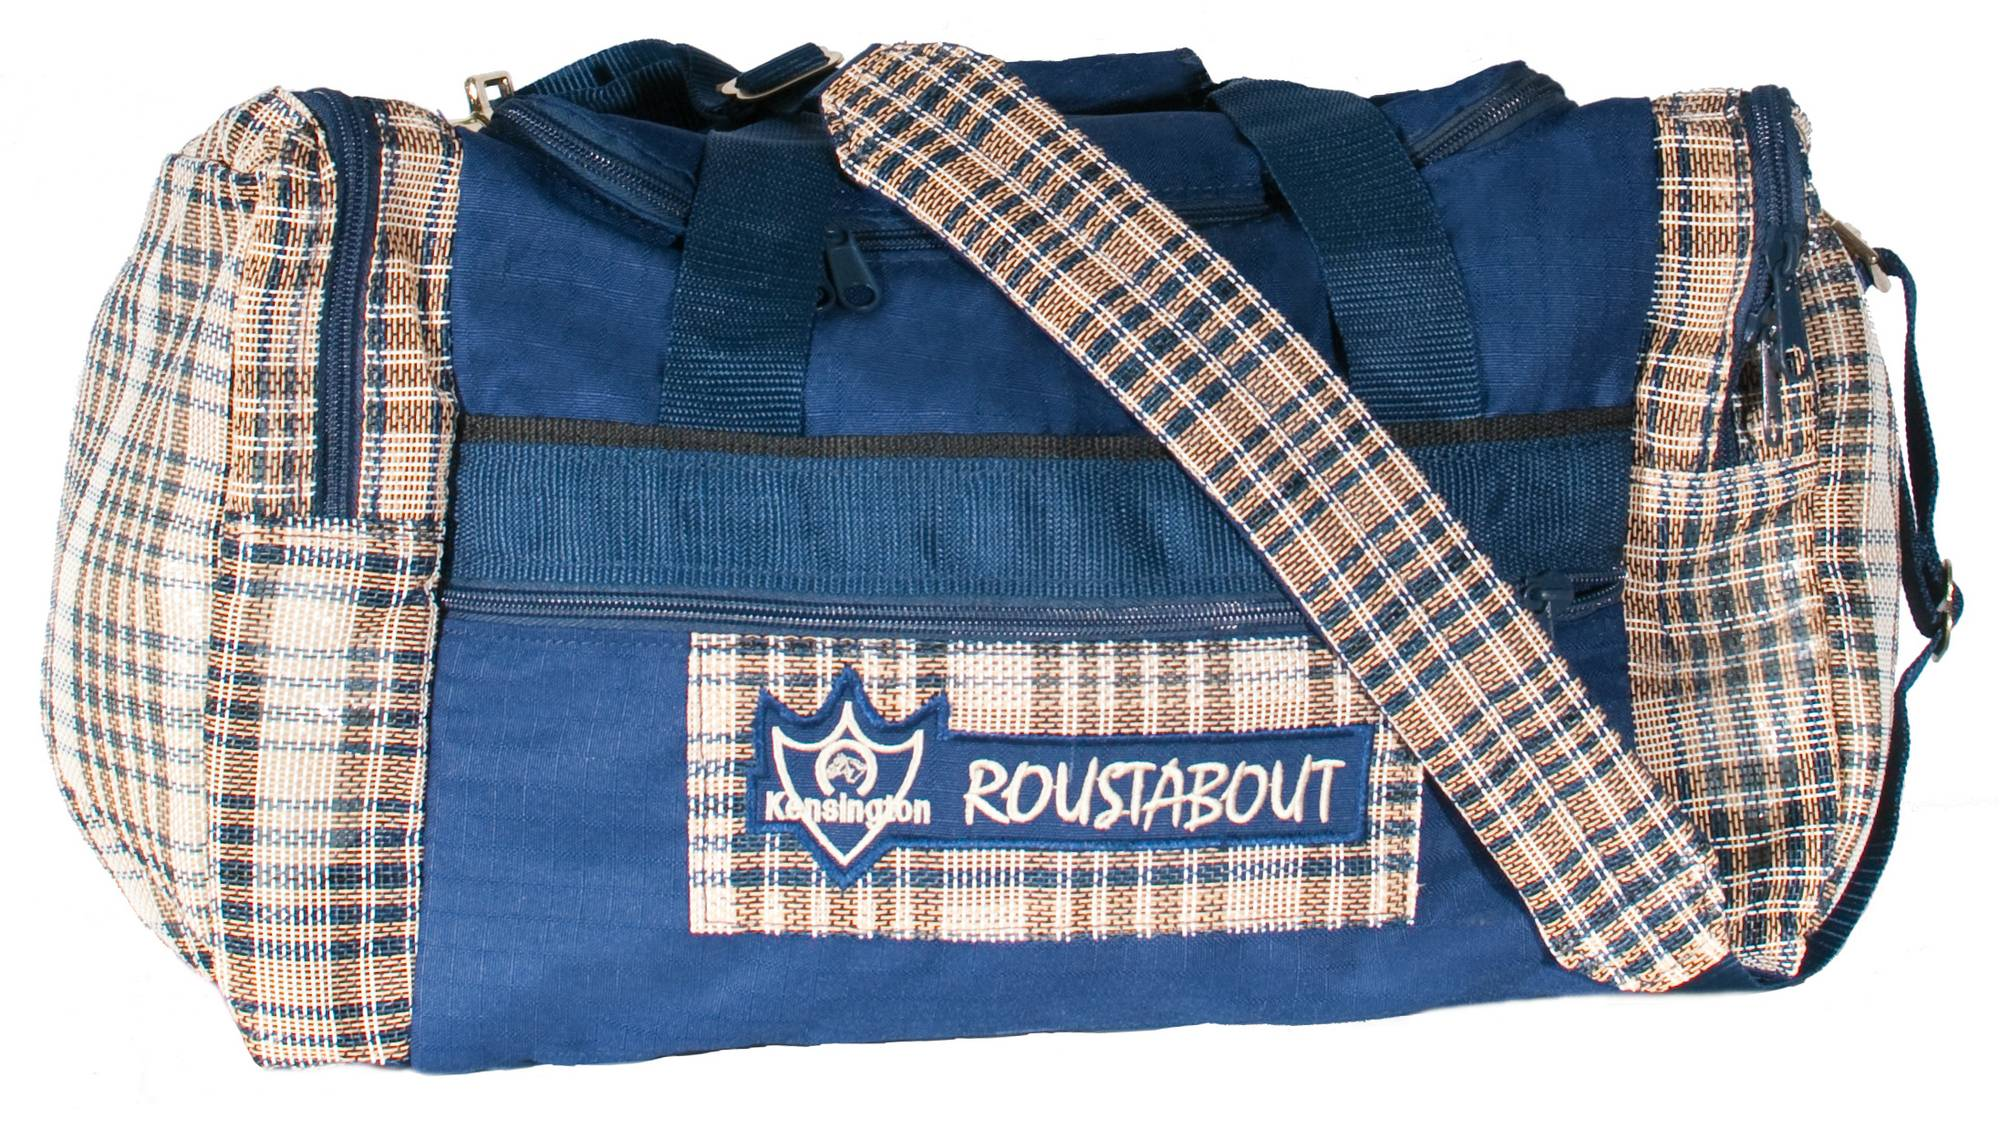 Outlet - Kensington Roustabout Gear Bag, Small, Navy with English Navy Plaid